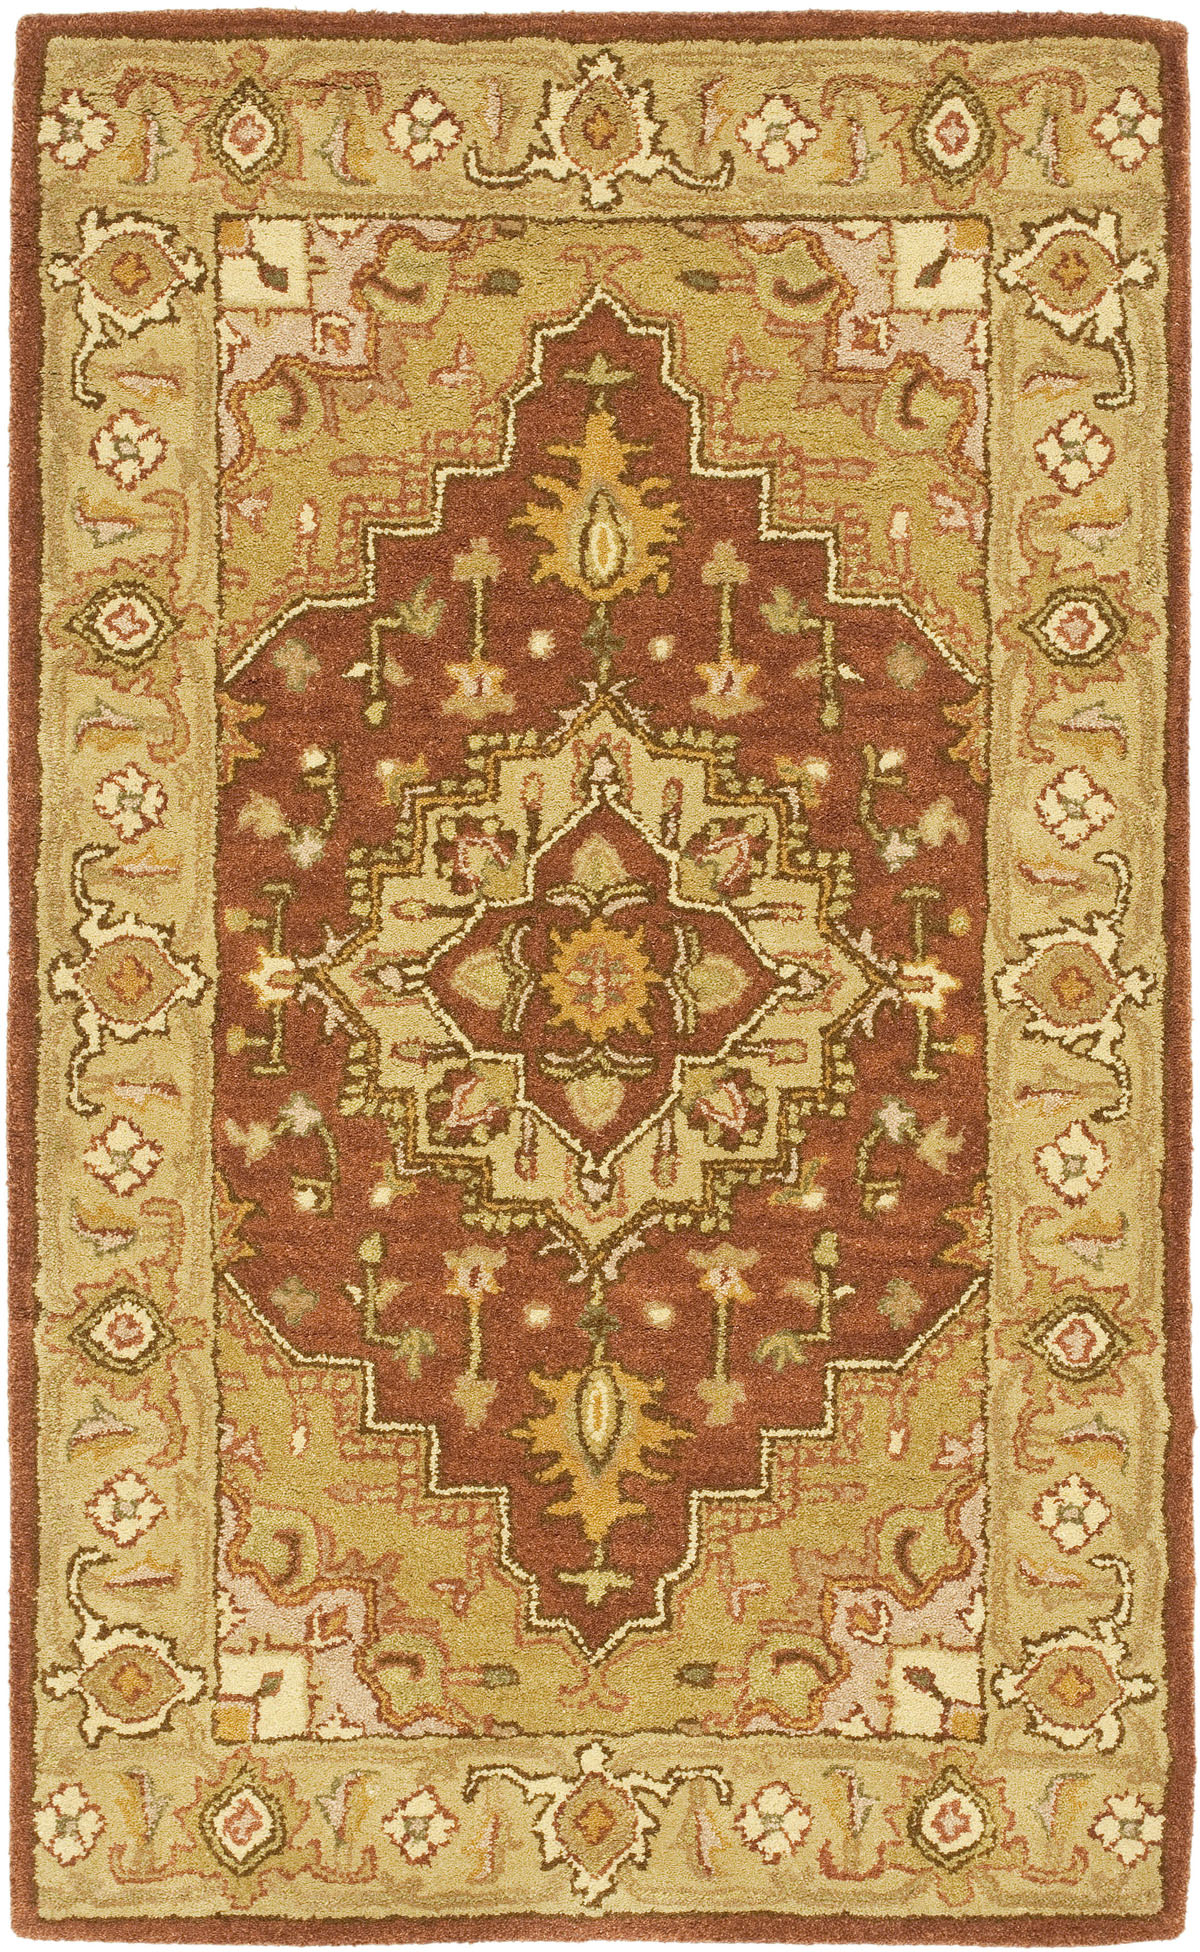 Safavieh Heritage Hg345a Rust And Gold Area Rug Free